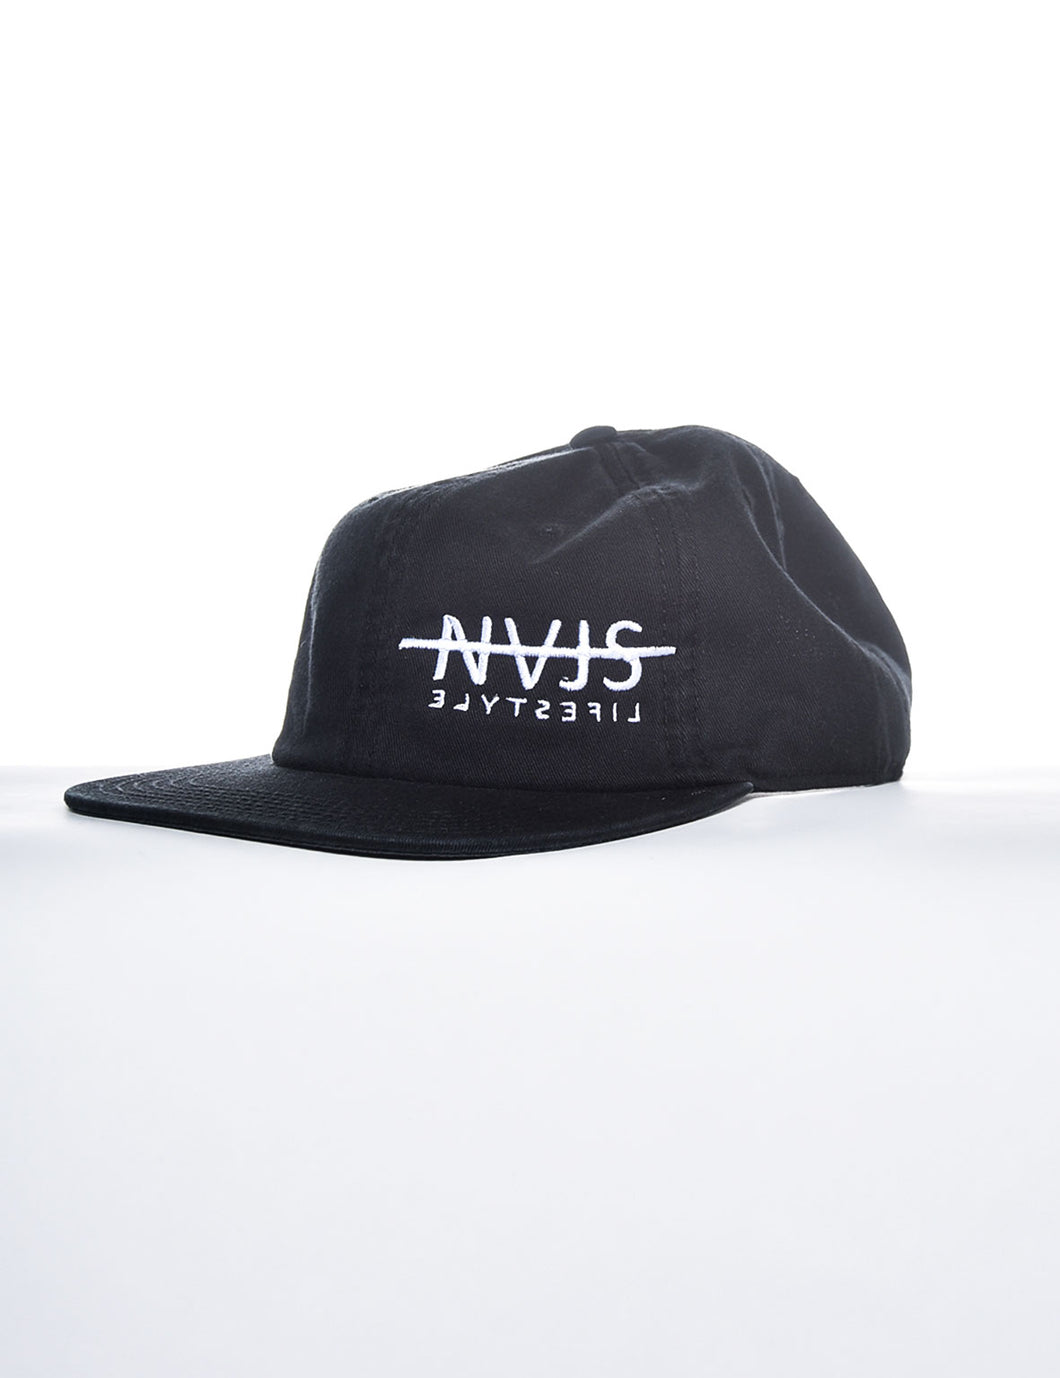 NAJSLIFESTYLE CAP (WASHED BLACK)